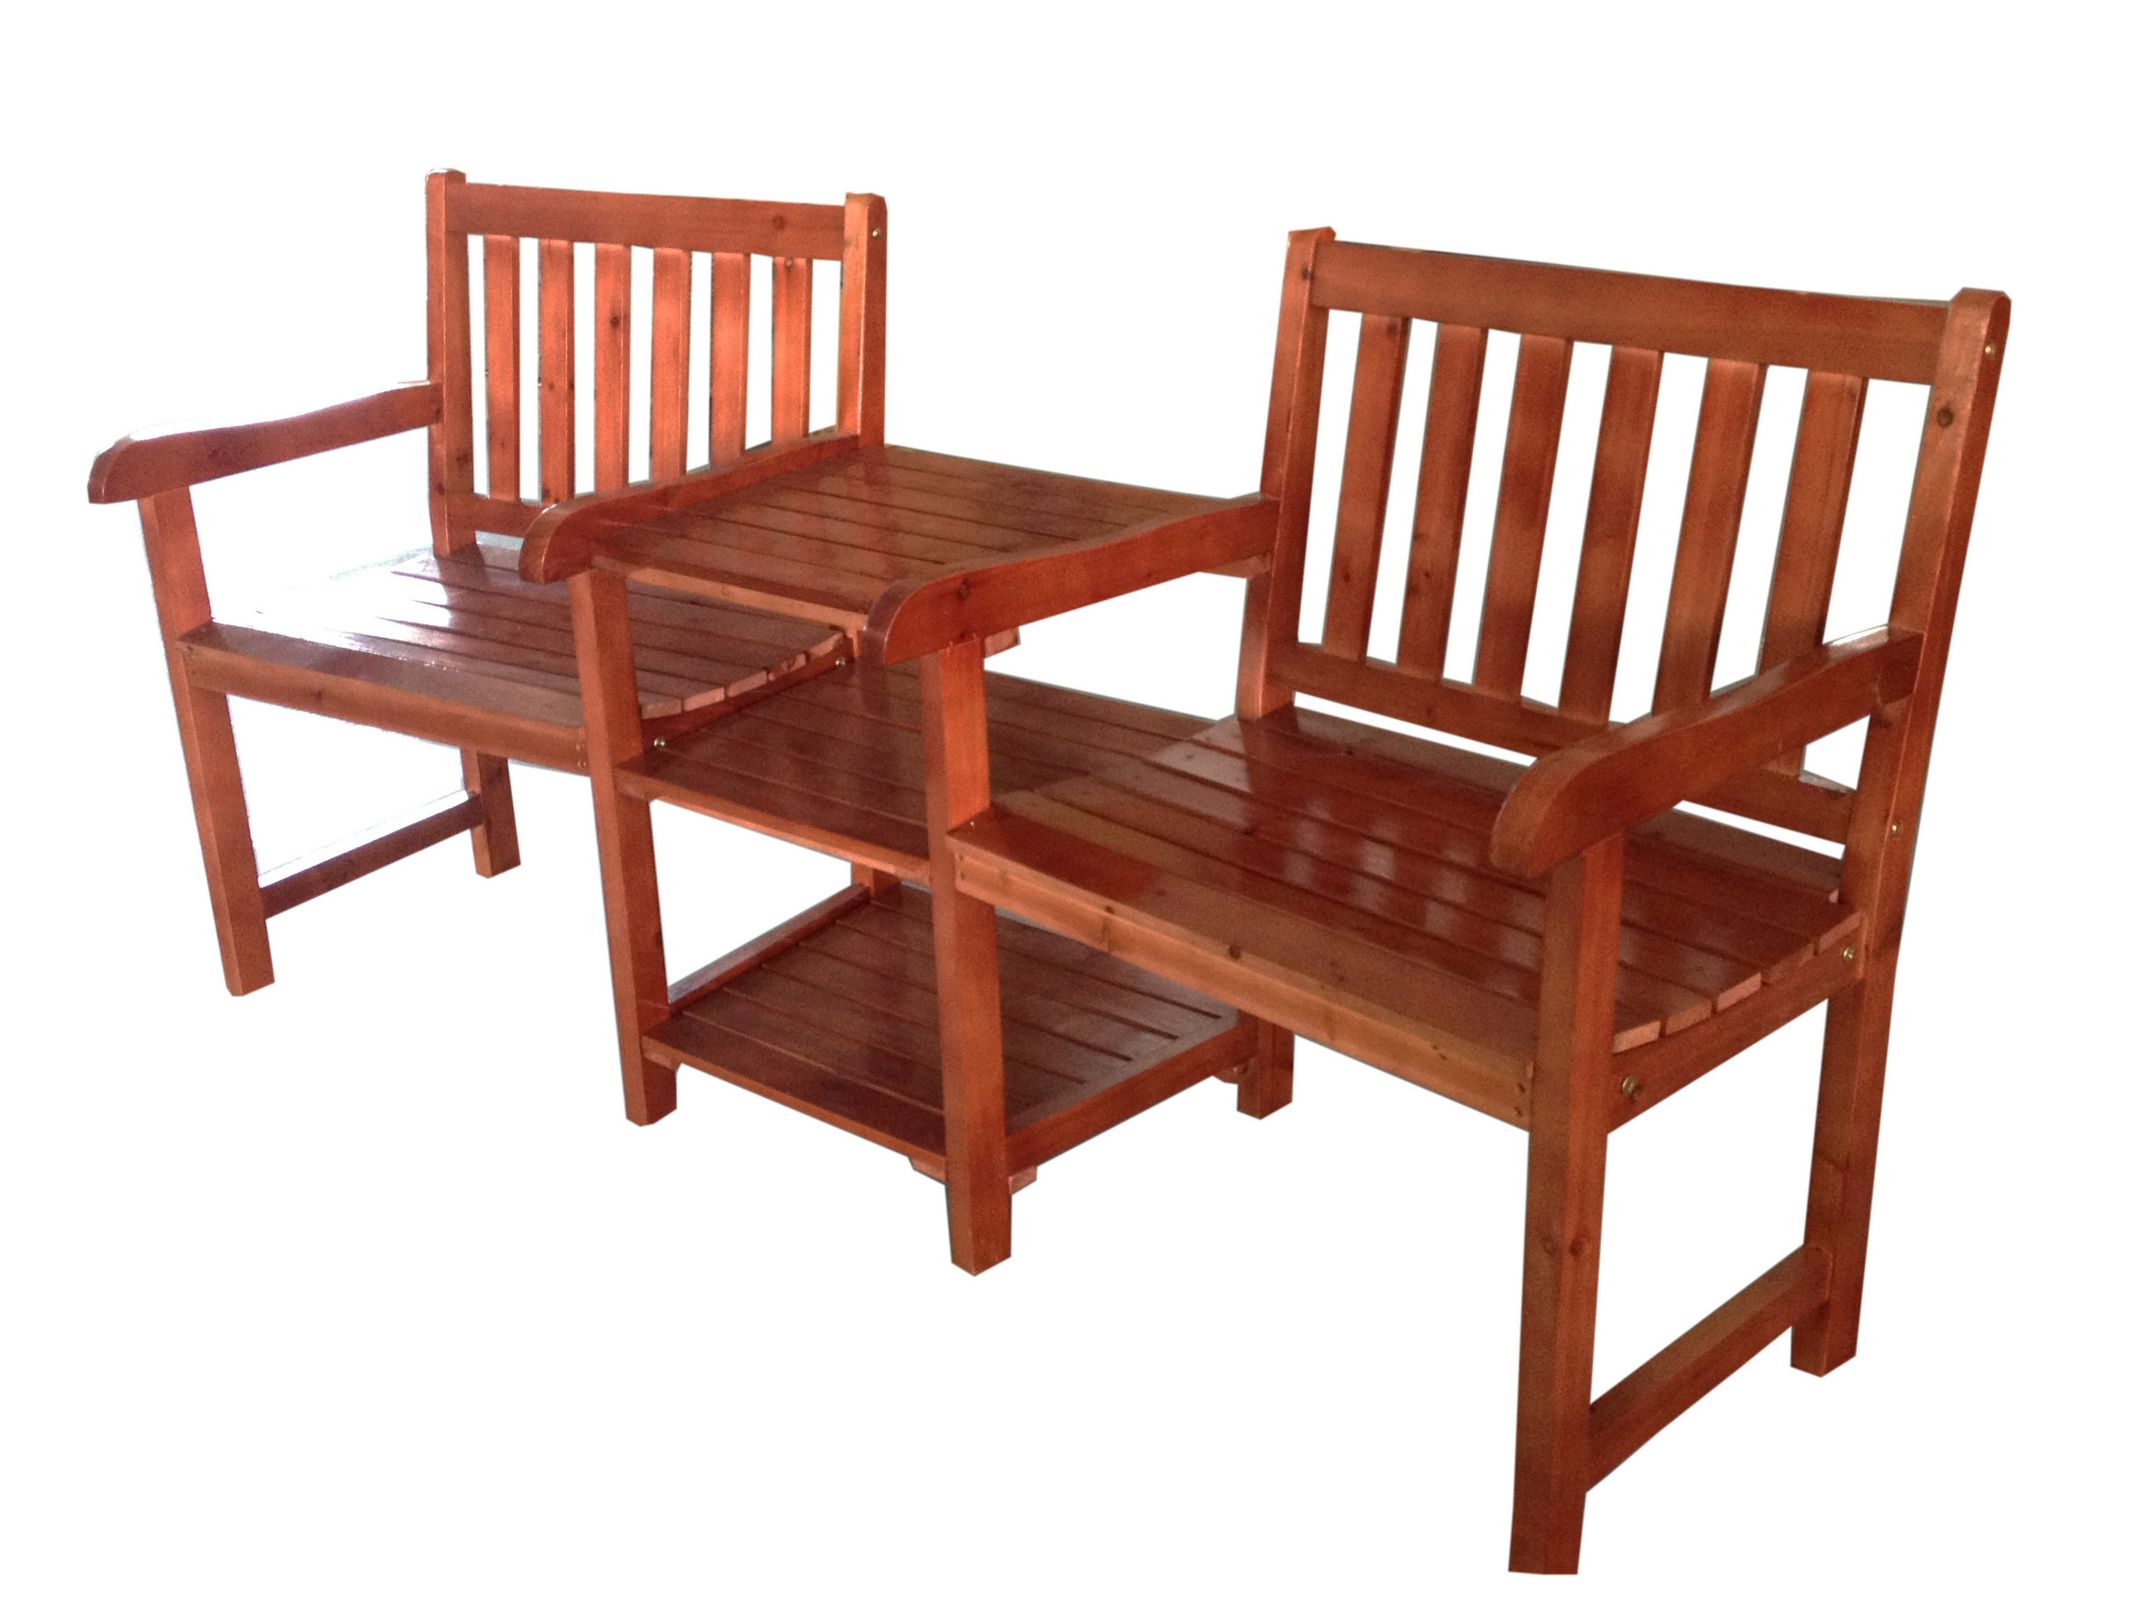 2 seater wooden companion bench chair table tawny outdoor for 12 seater wooden outdoor table